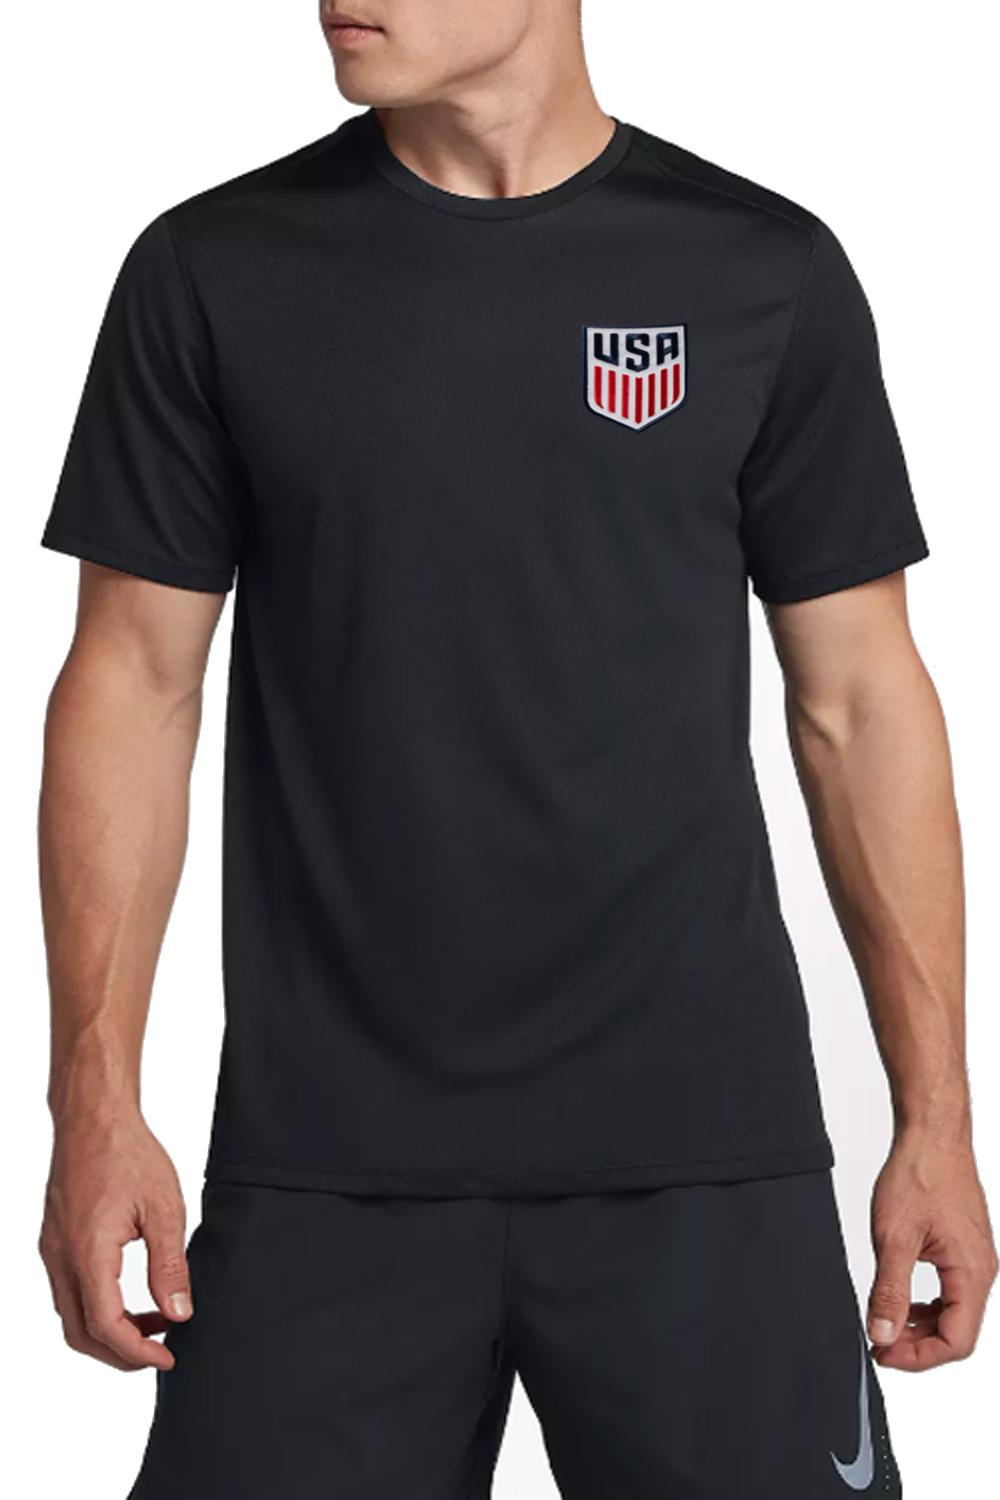 USA Limited Collection 2021